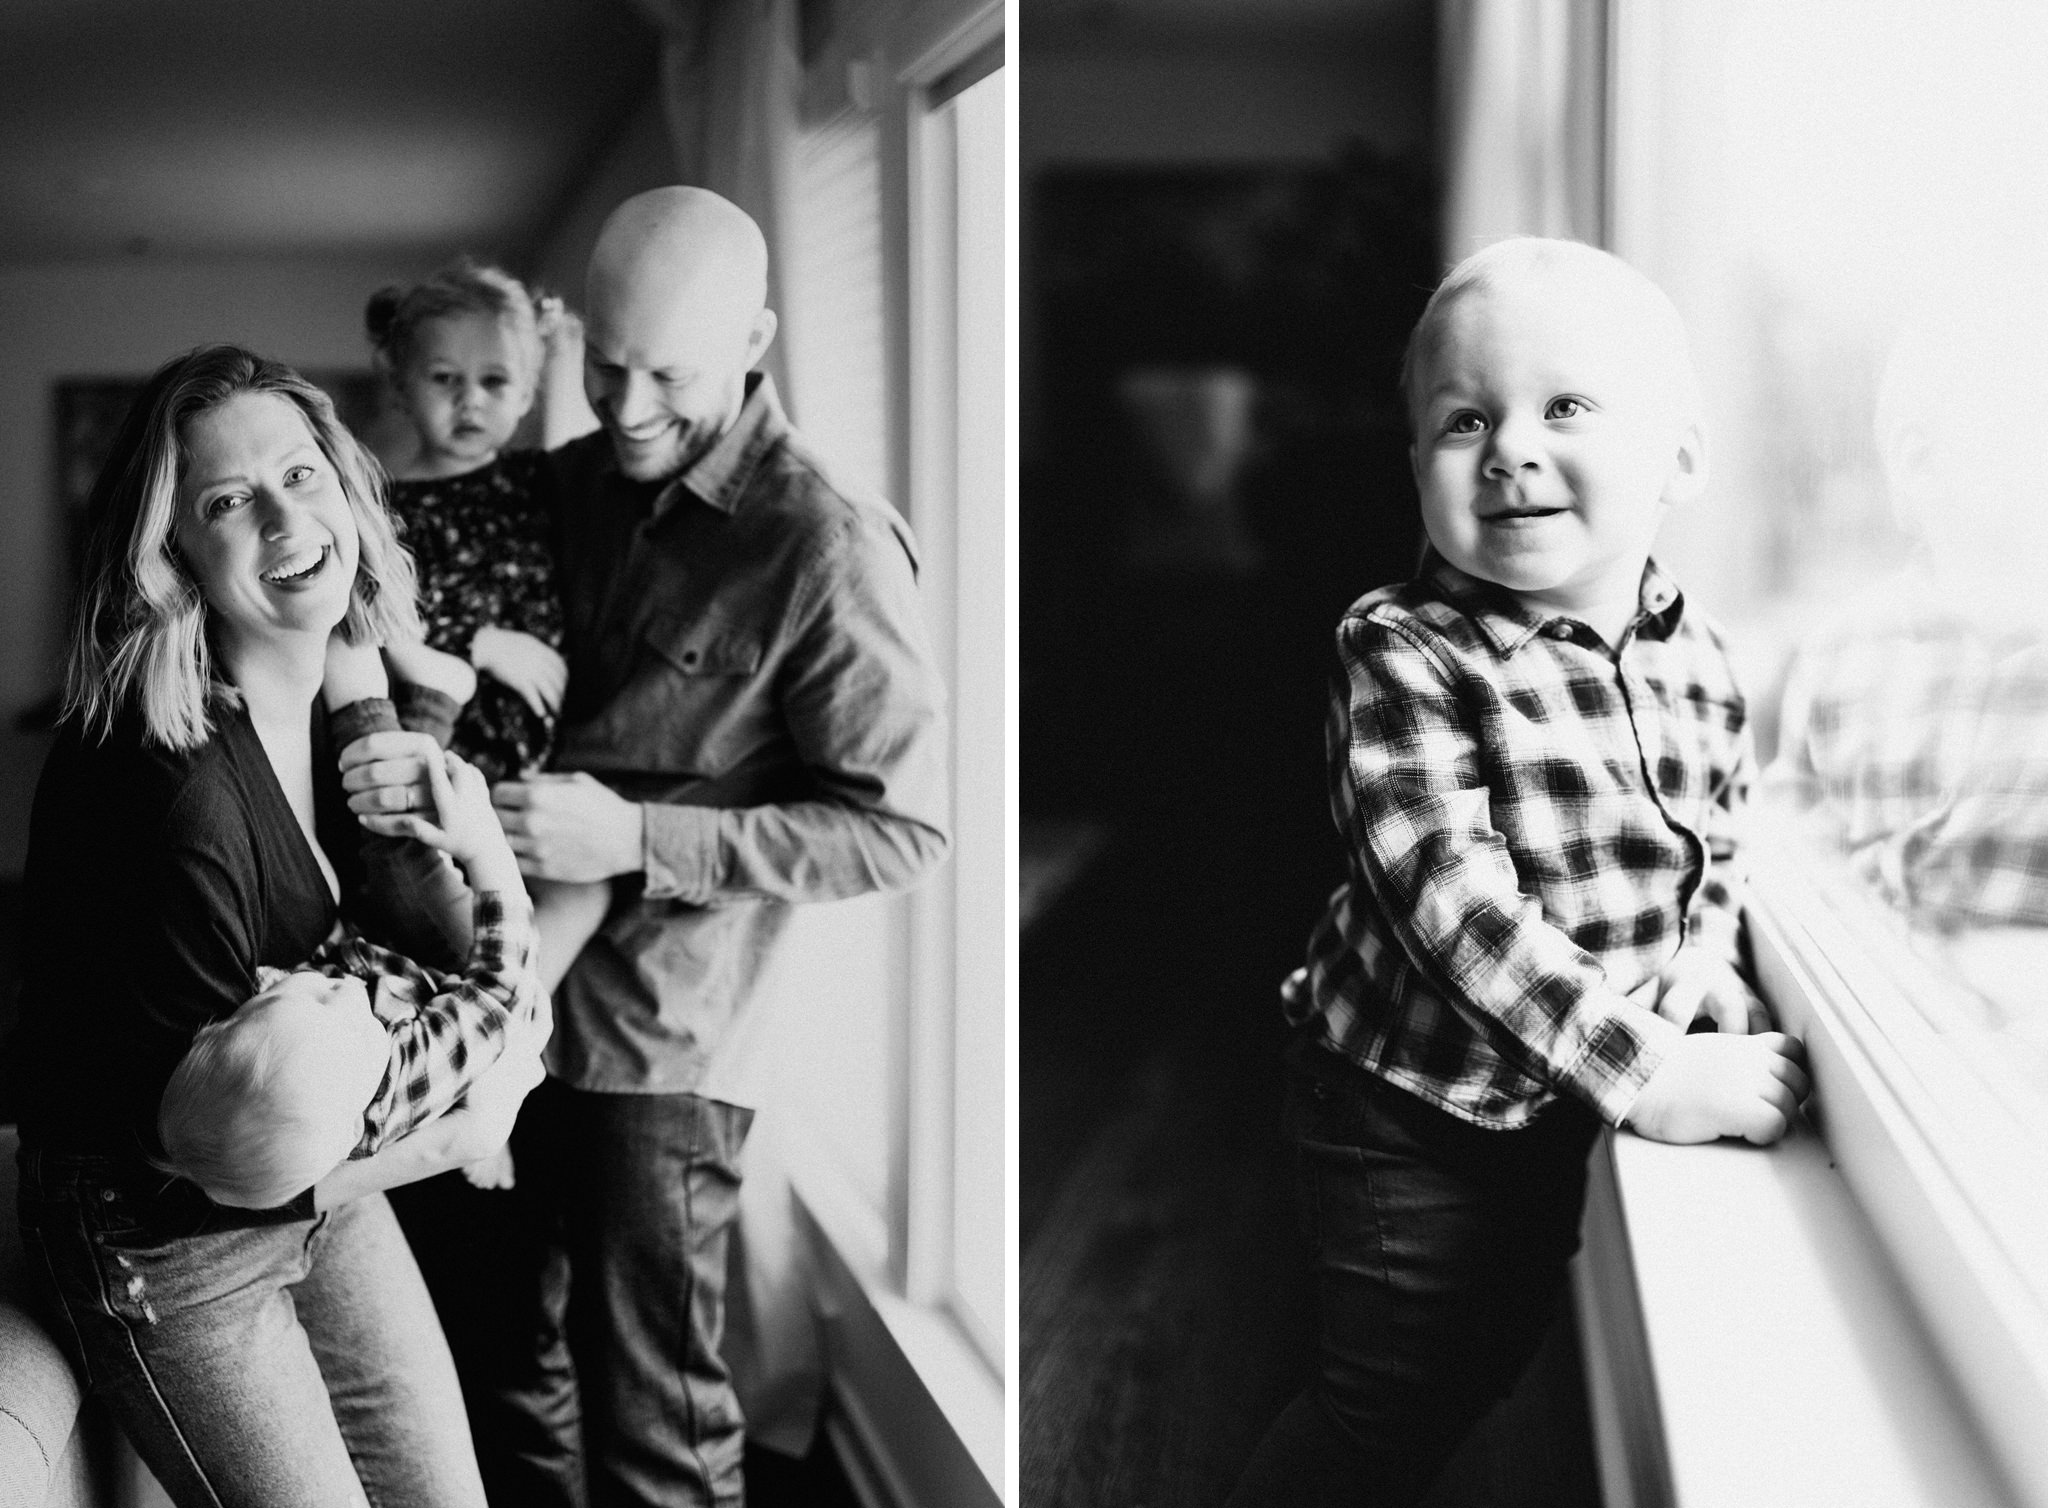 016-rempel-photography-wedding-chicago-family-oak-park-goode-young-children-lifestyle-inspiration.jpg